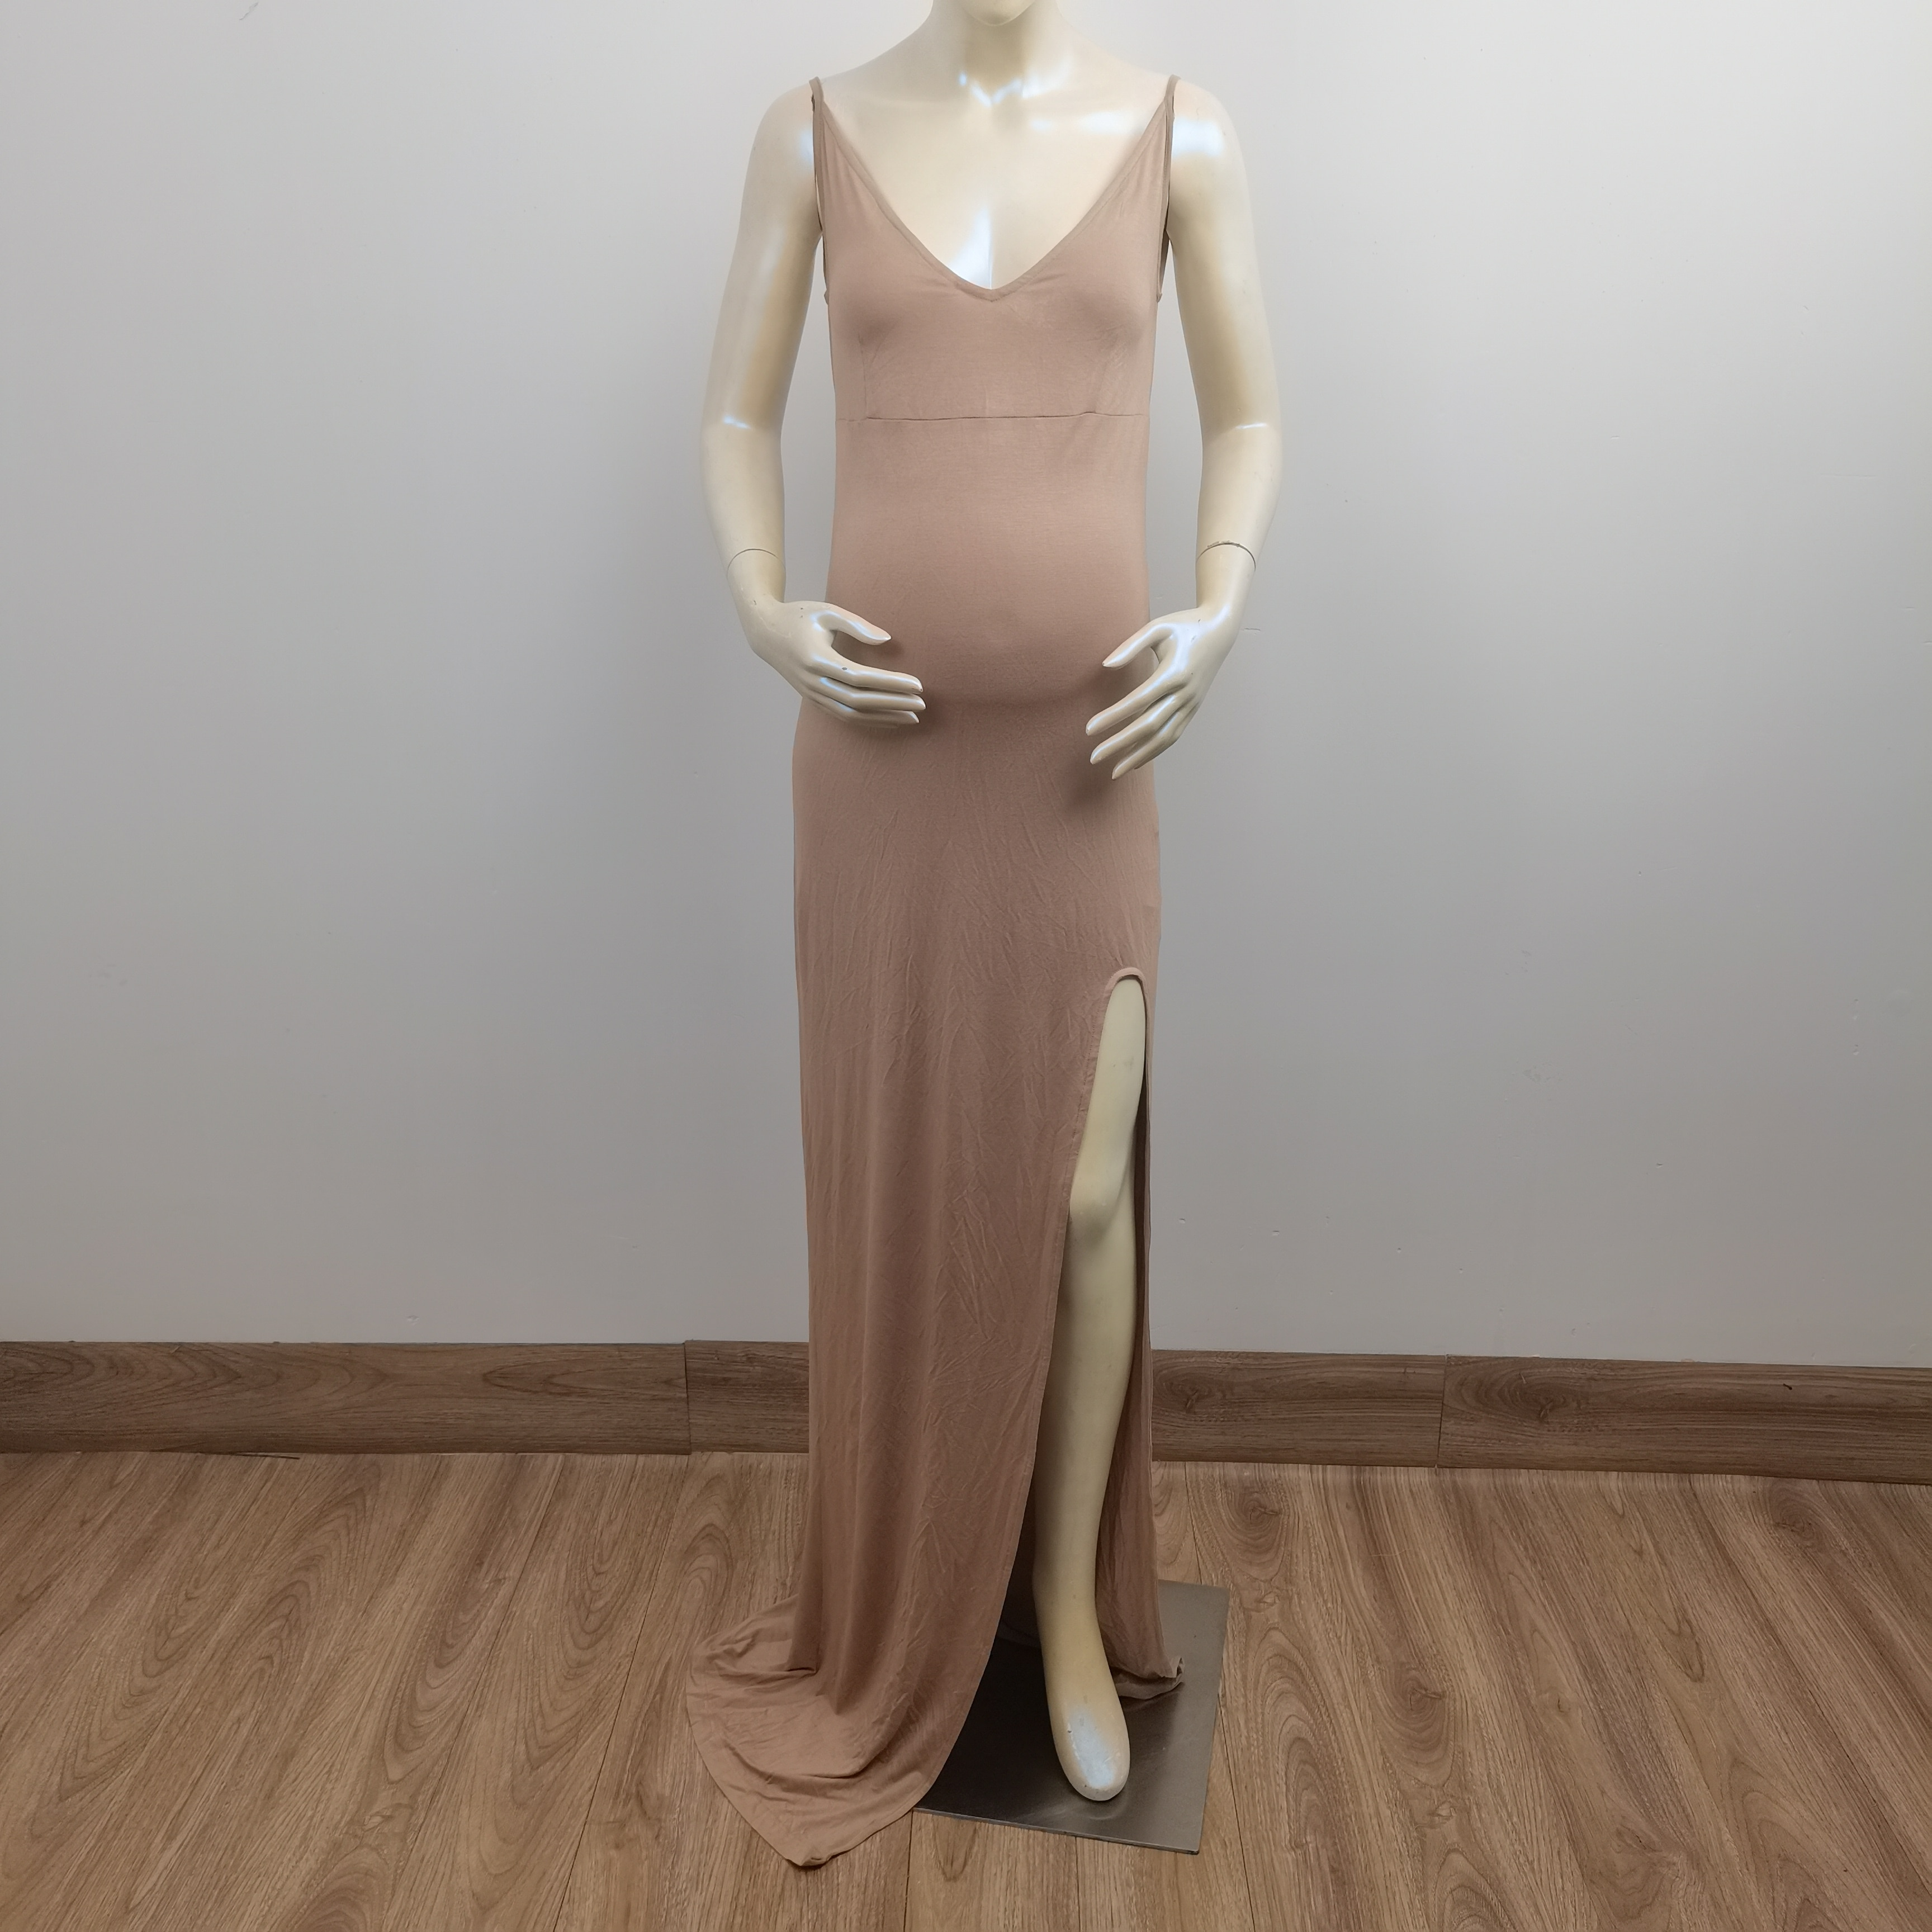 Don&Judy Deep V Neck Slip Maternity Dress Sexy Backless Sleeveless Modal Maternity Gown for Pregnant Women Photography Prop enlarge